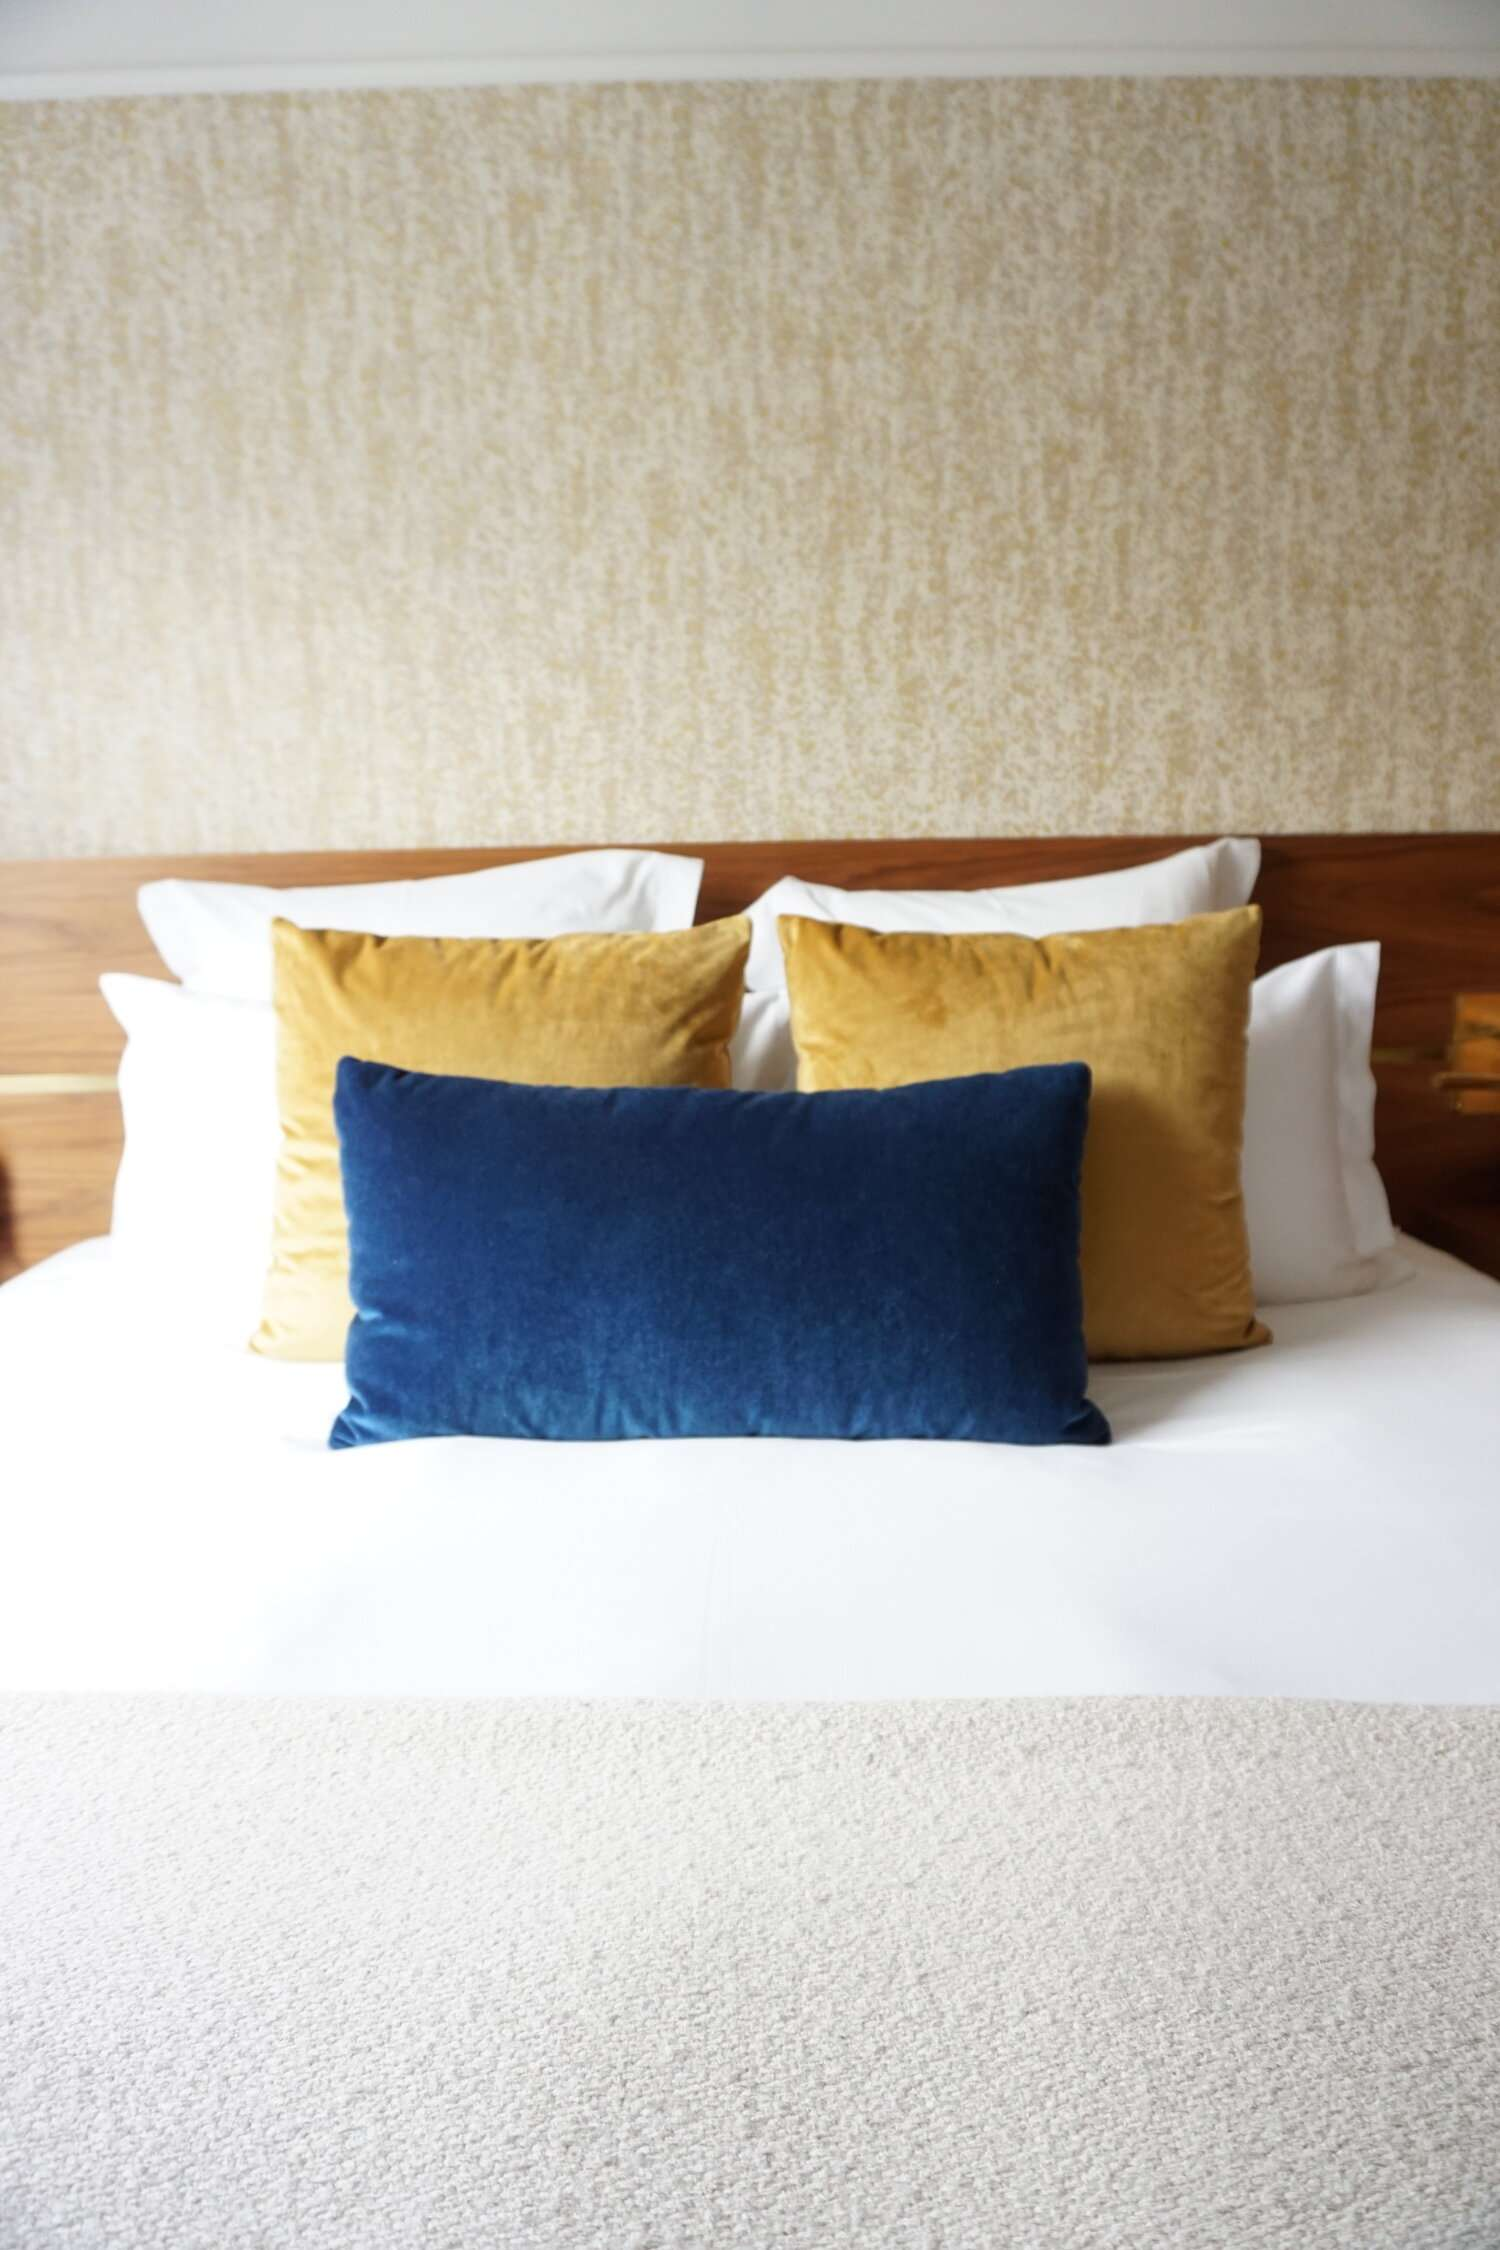 gold and blue cushions on the bed at Le Hotel Parister in Paris